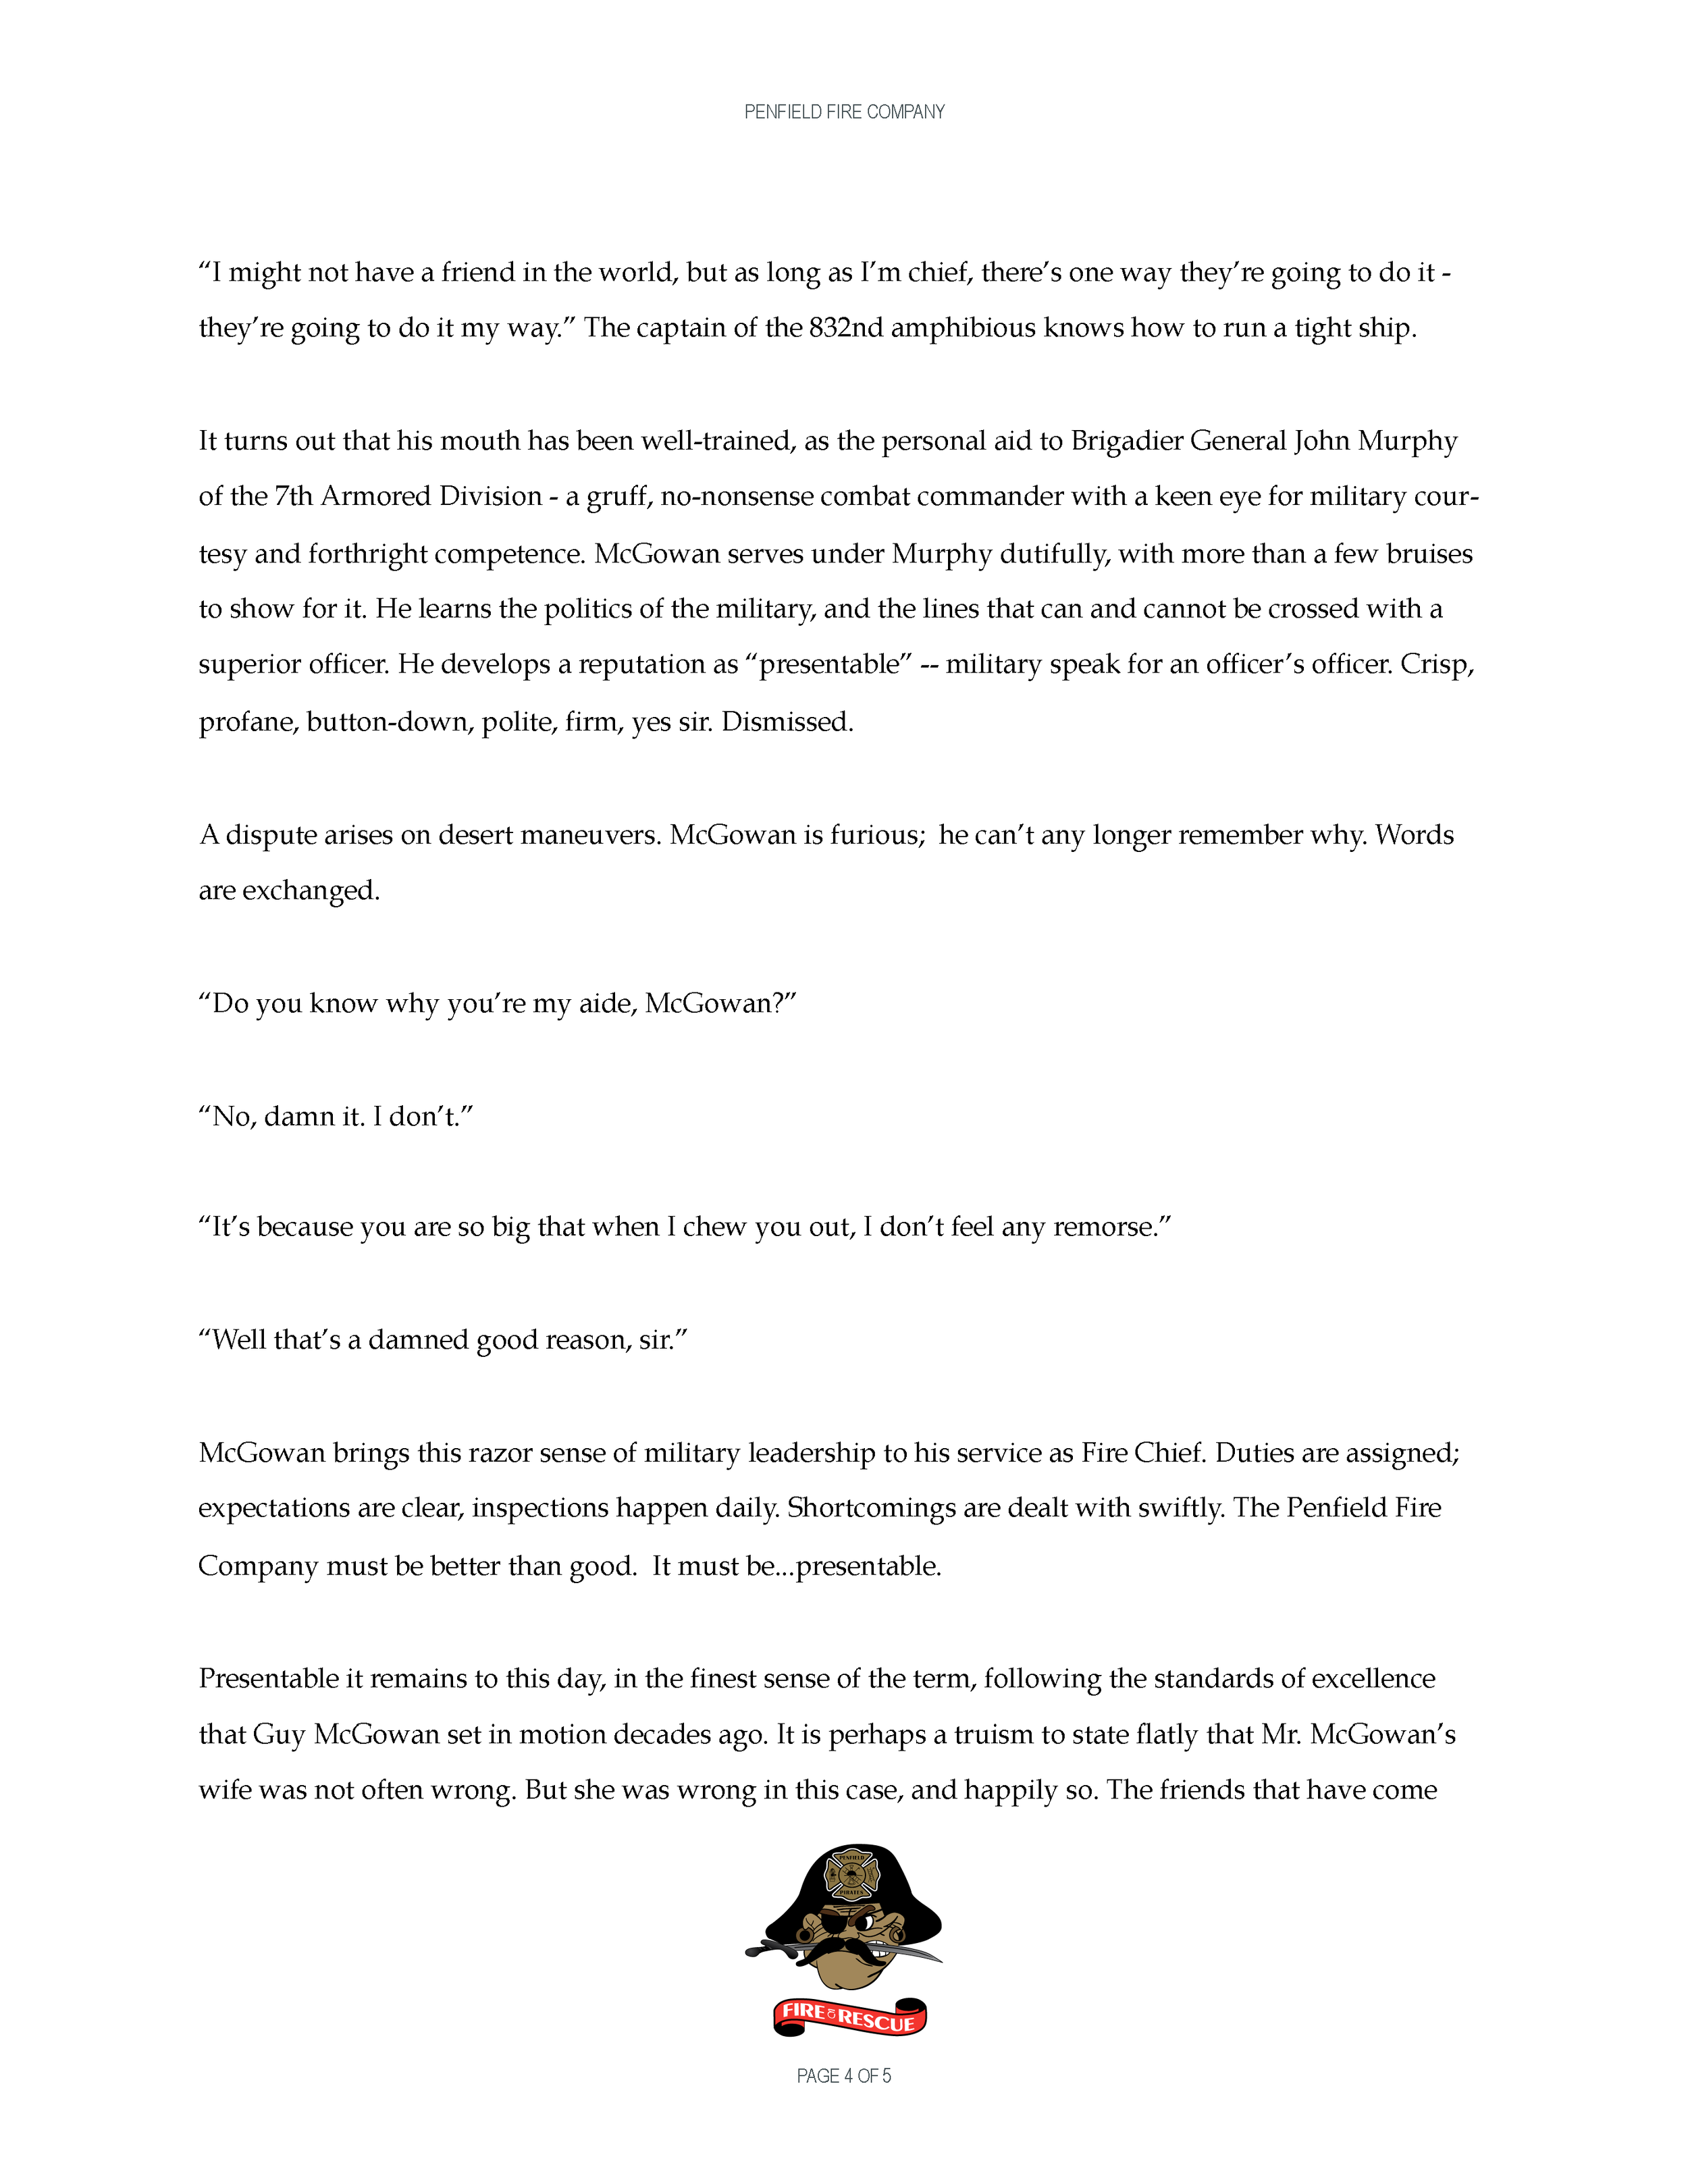 09-08-05 Guy McGowan Interview_Page_4.png